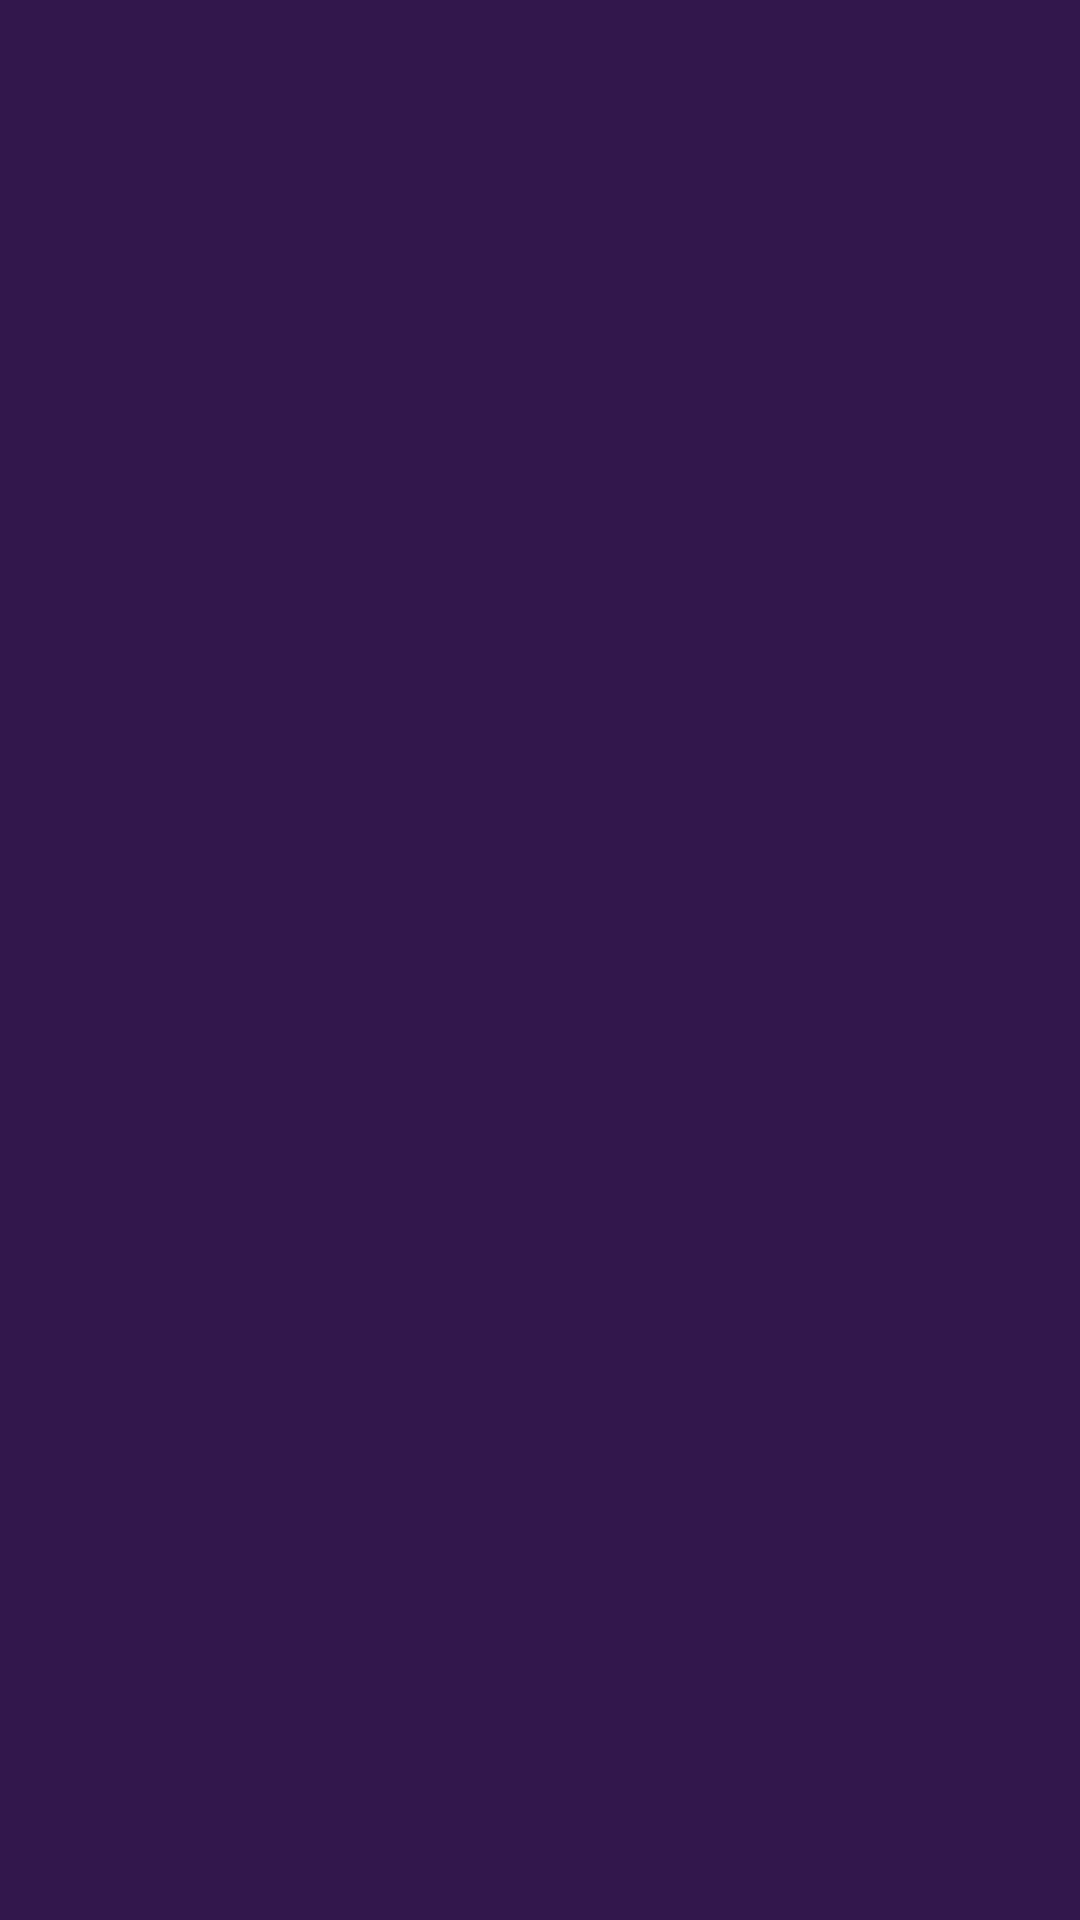 1080x1920 Russian Violet Solid Color Background